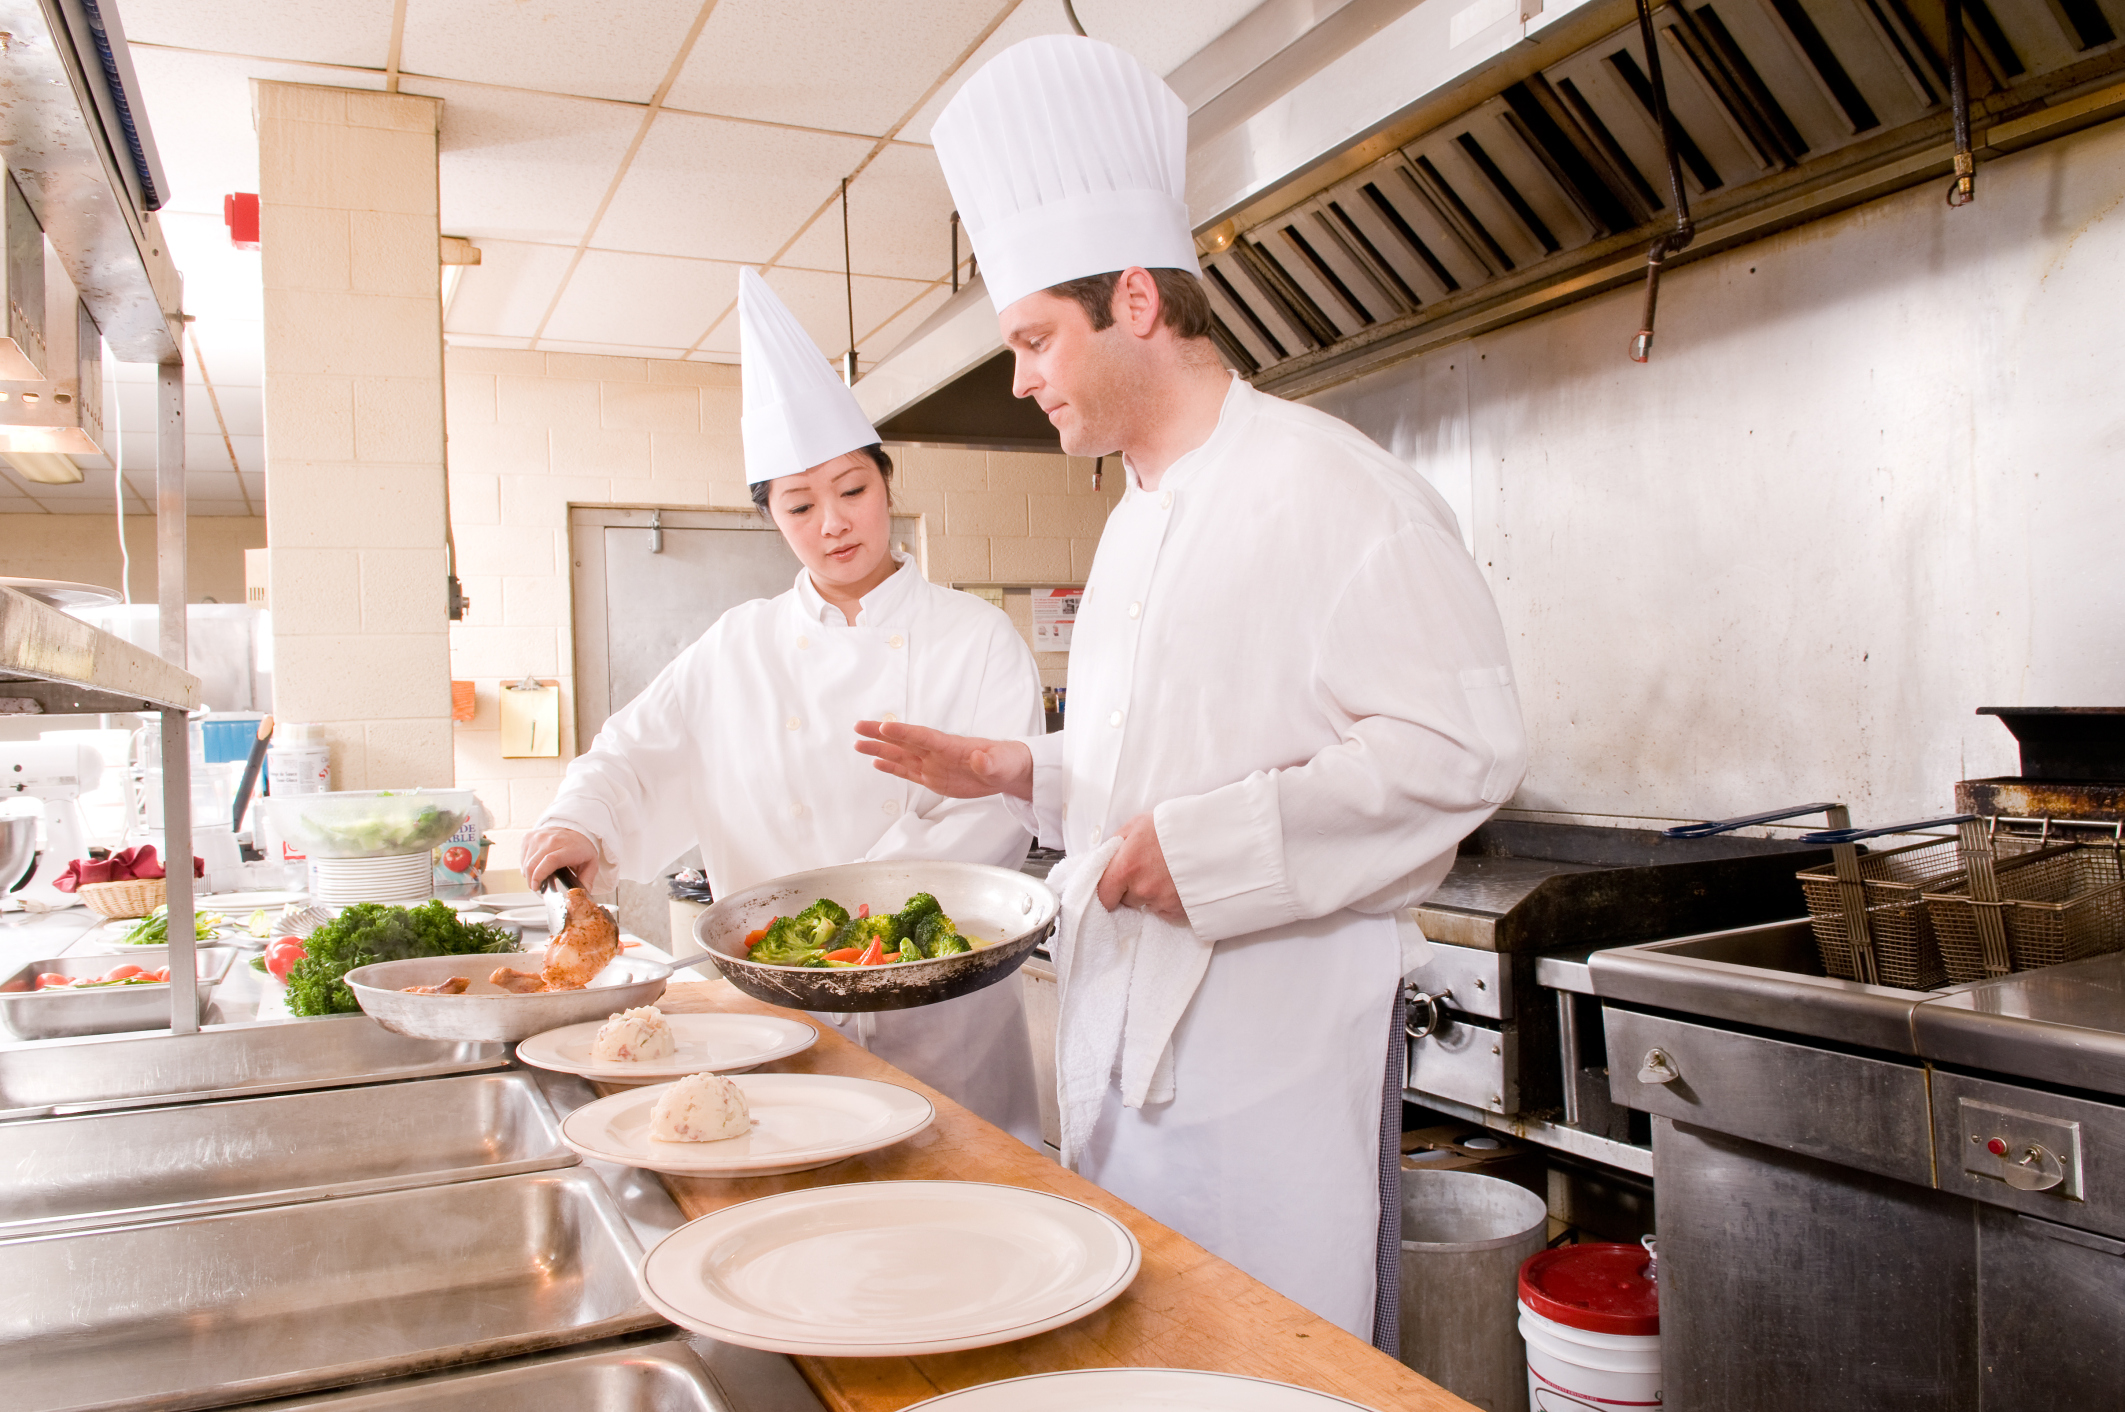 About Food Safety Sanitation Management | Chron com